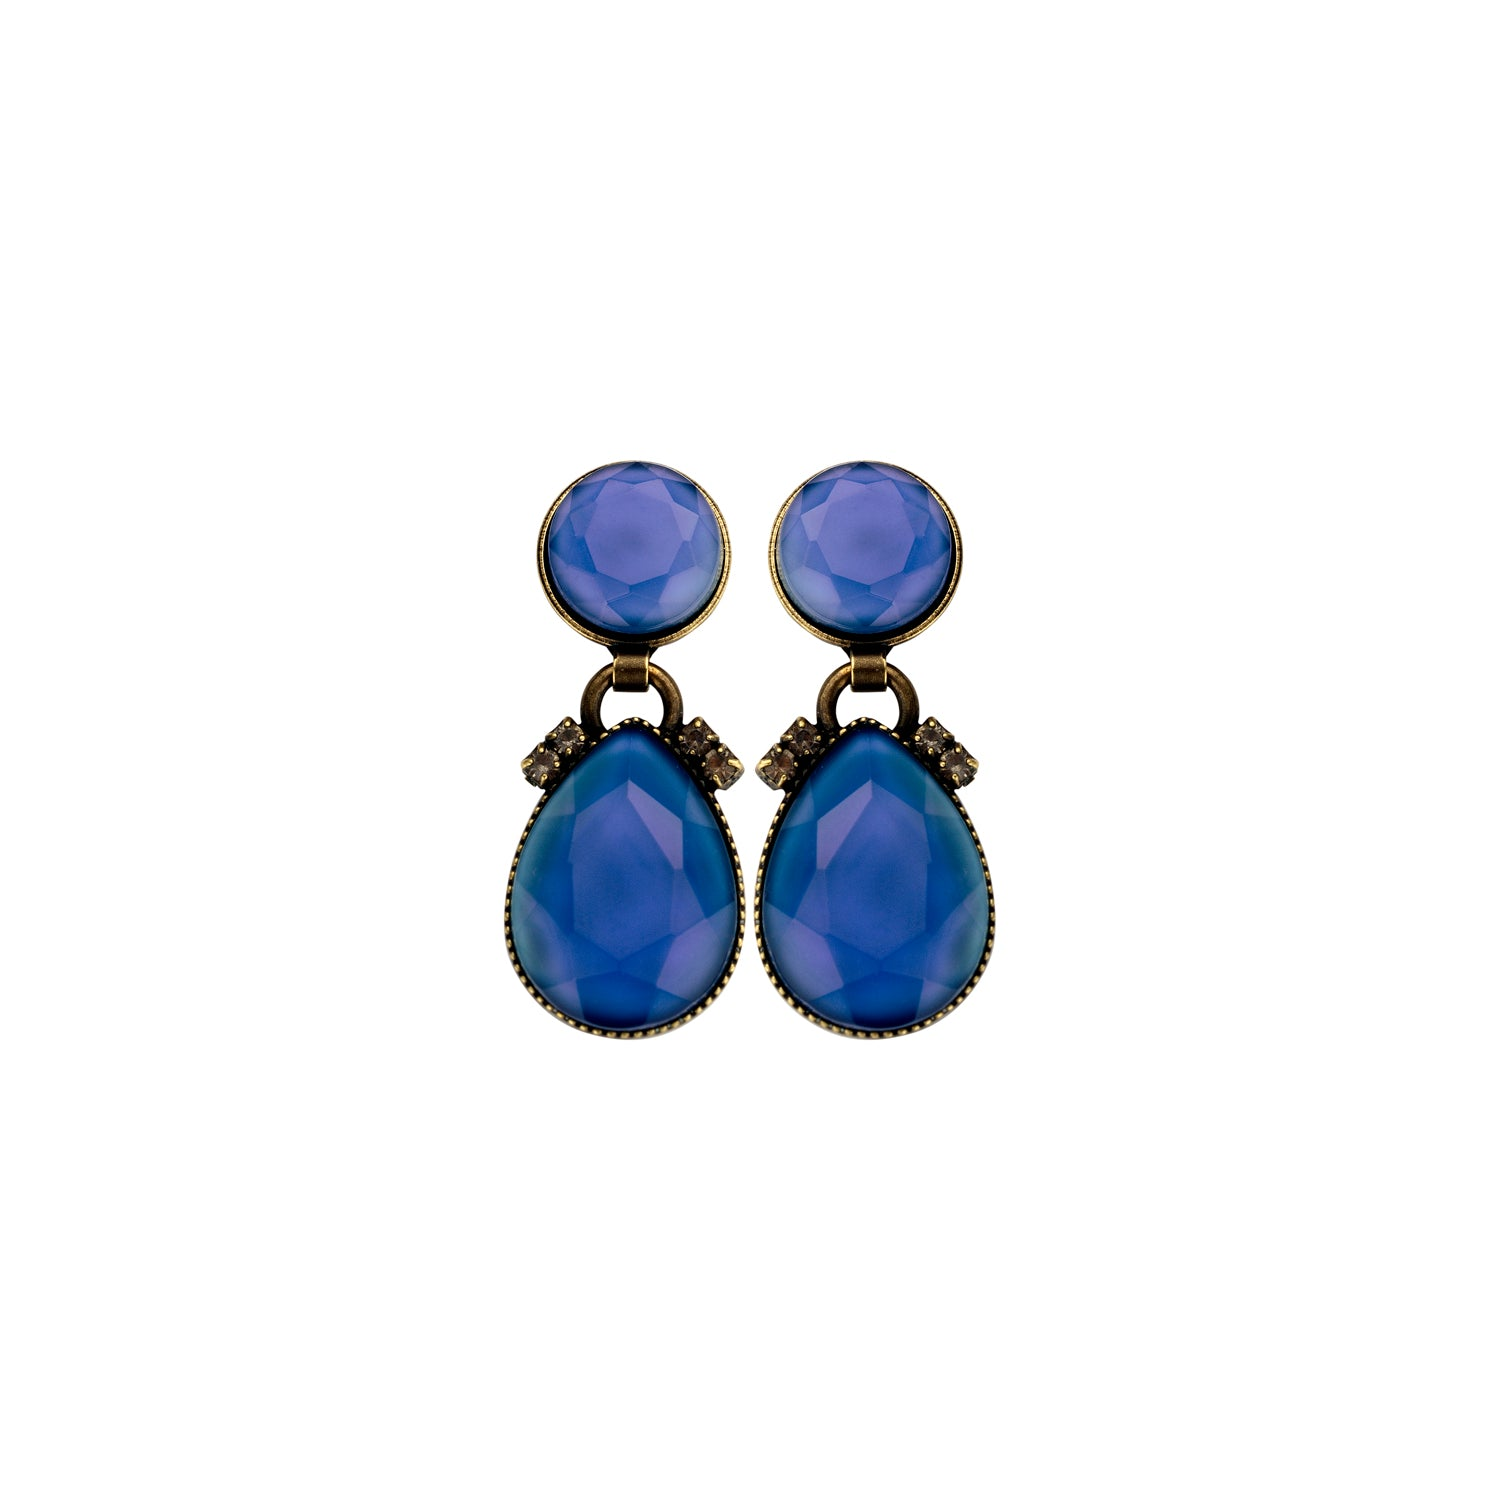 2 mini drops jeans earrings